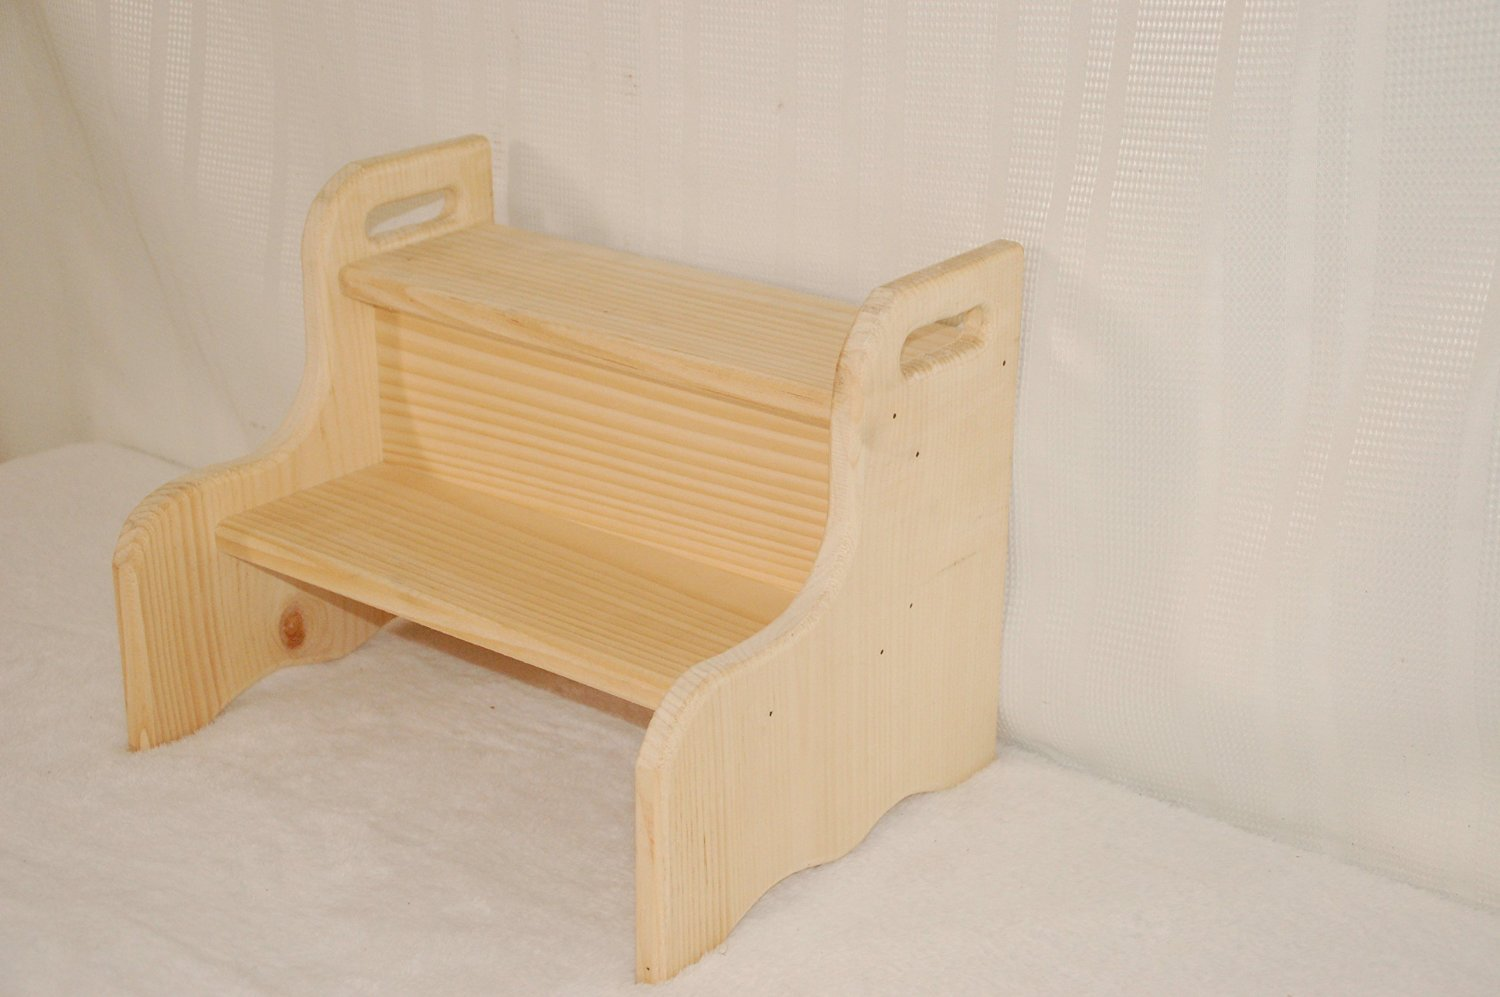 Unfinished Wooden Step Stools For Kids Thesteppingstool Com